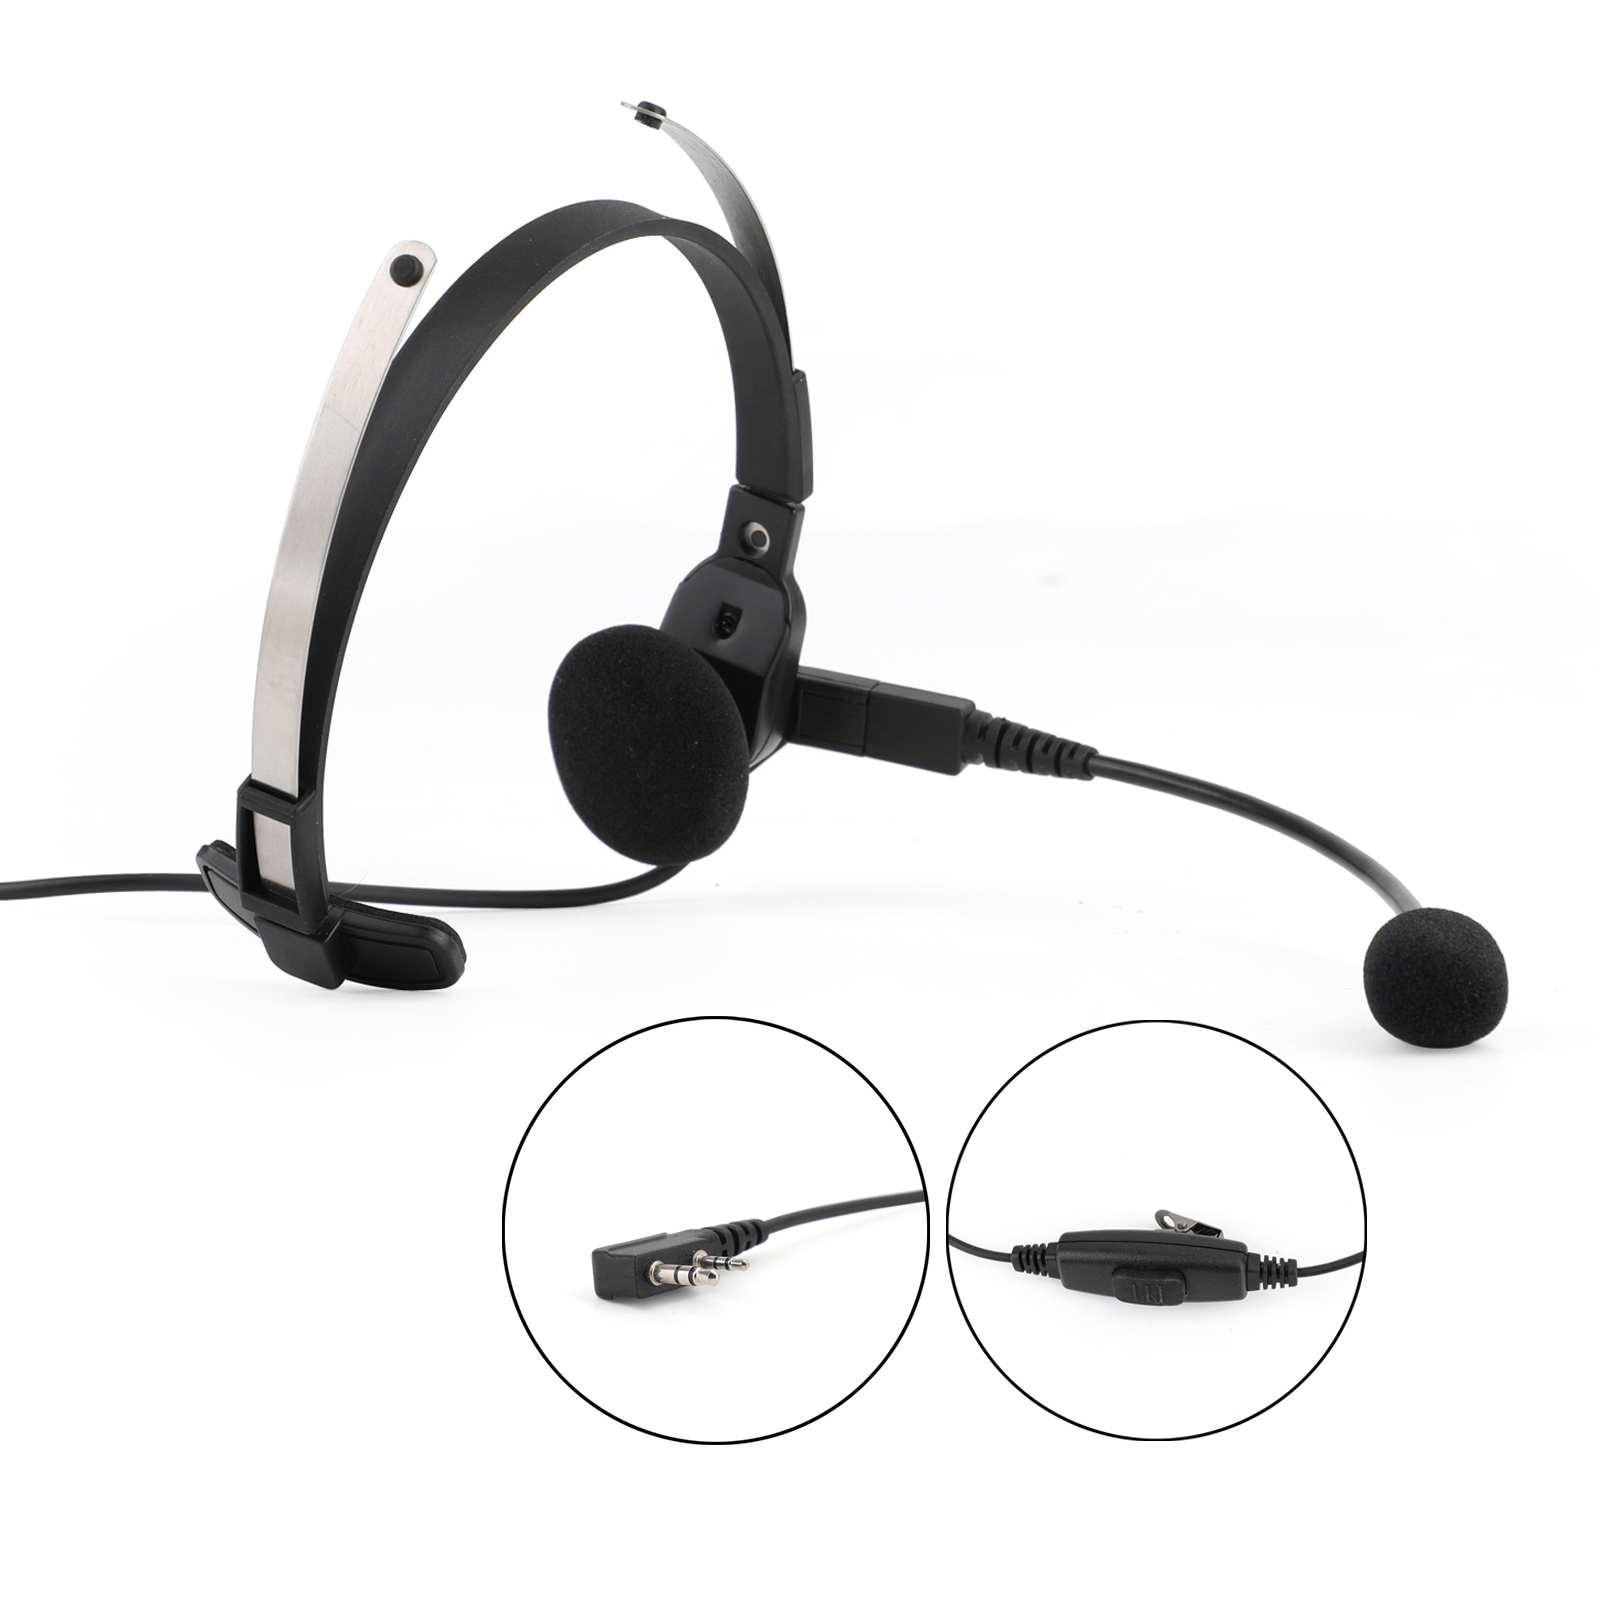 Artudatech Unilateral Headset K-head for Kenwood <font><b>TK</b></font>-208 <font><b>TK</b></font>-220 <font><b>TK</b></font>-240 <font><b>TK</b></font>-240D <font><b>TK</b></font>-248 <font><b>TK</b></font>-3202 <font><b>TK</b></font> <font><b>3107</b></font> image